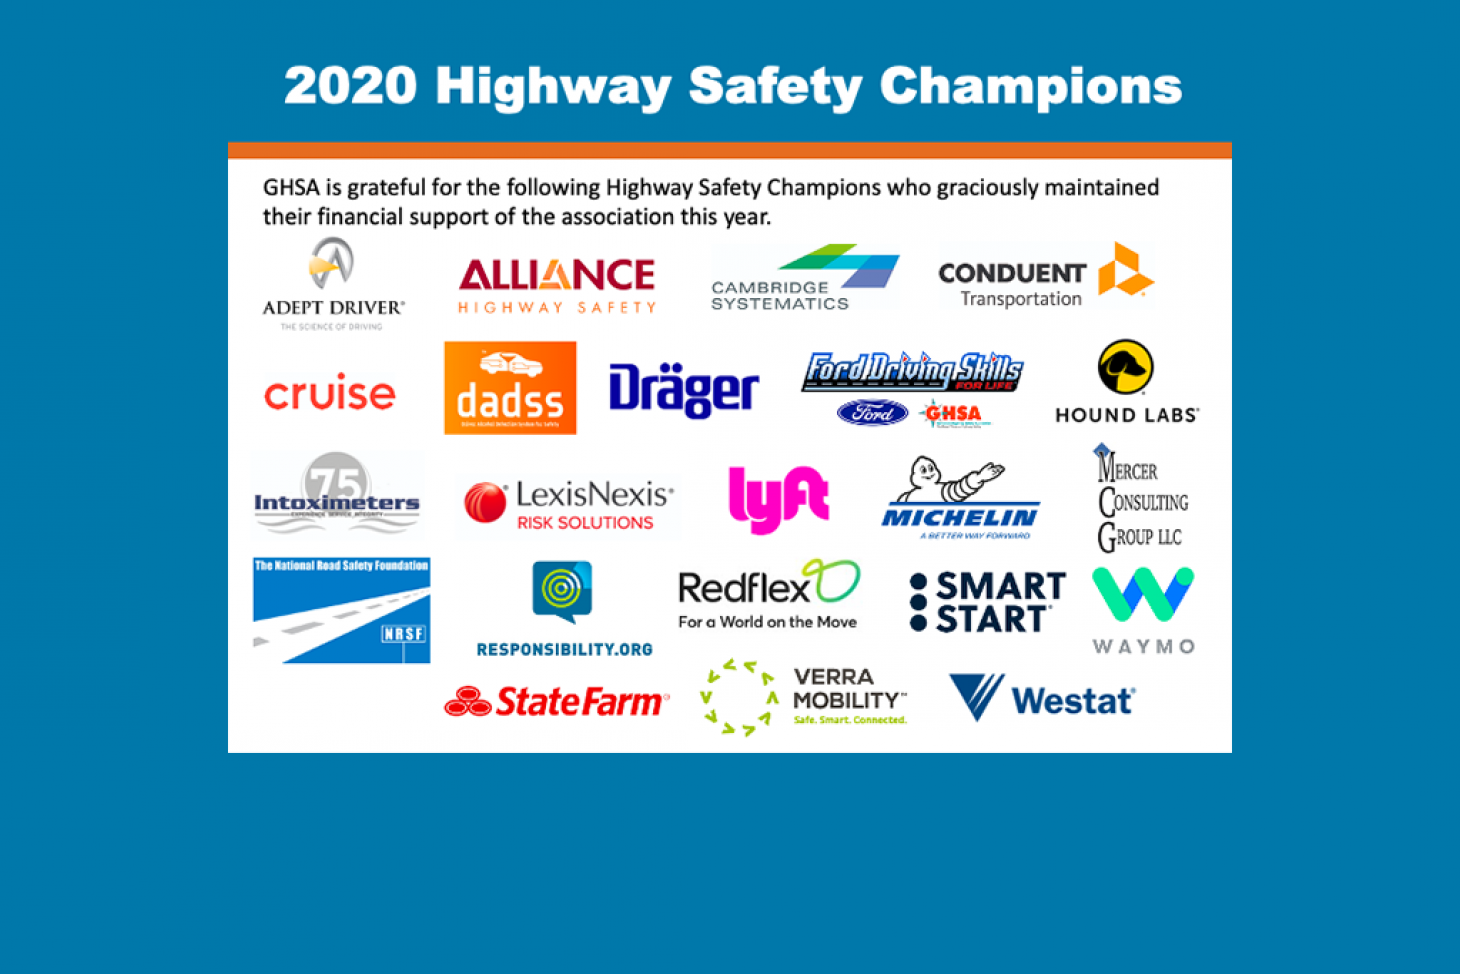 2020 Highway Safety Champions